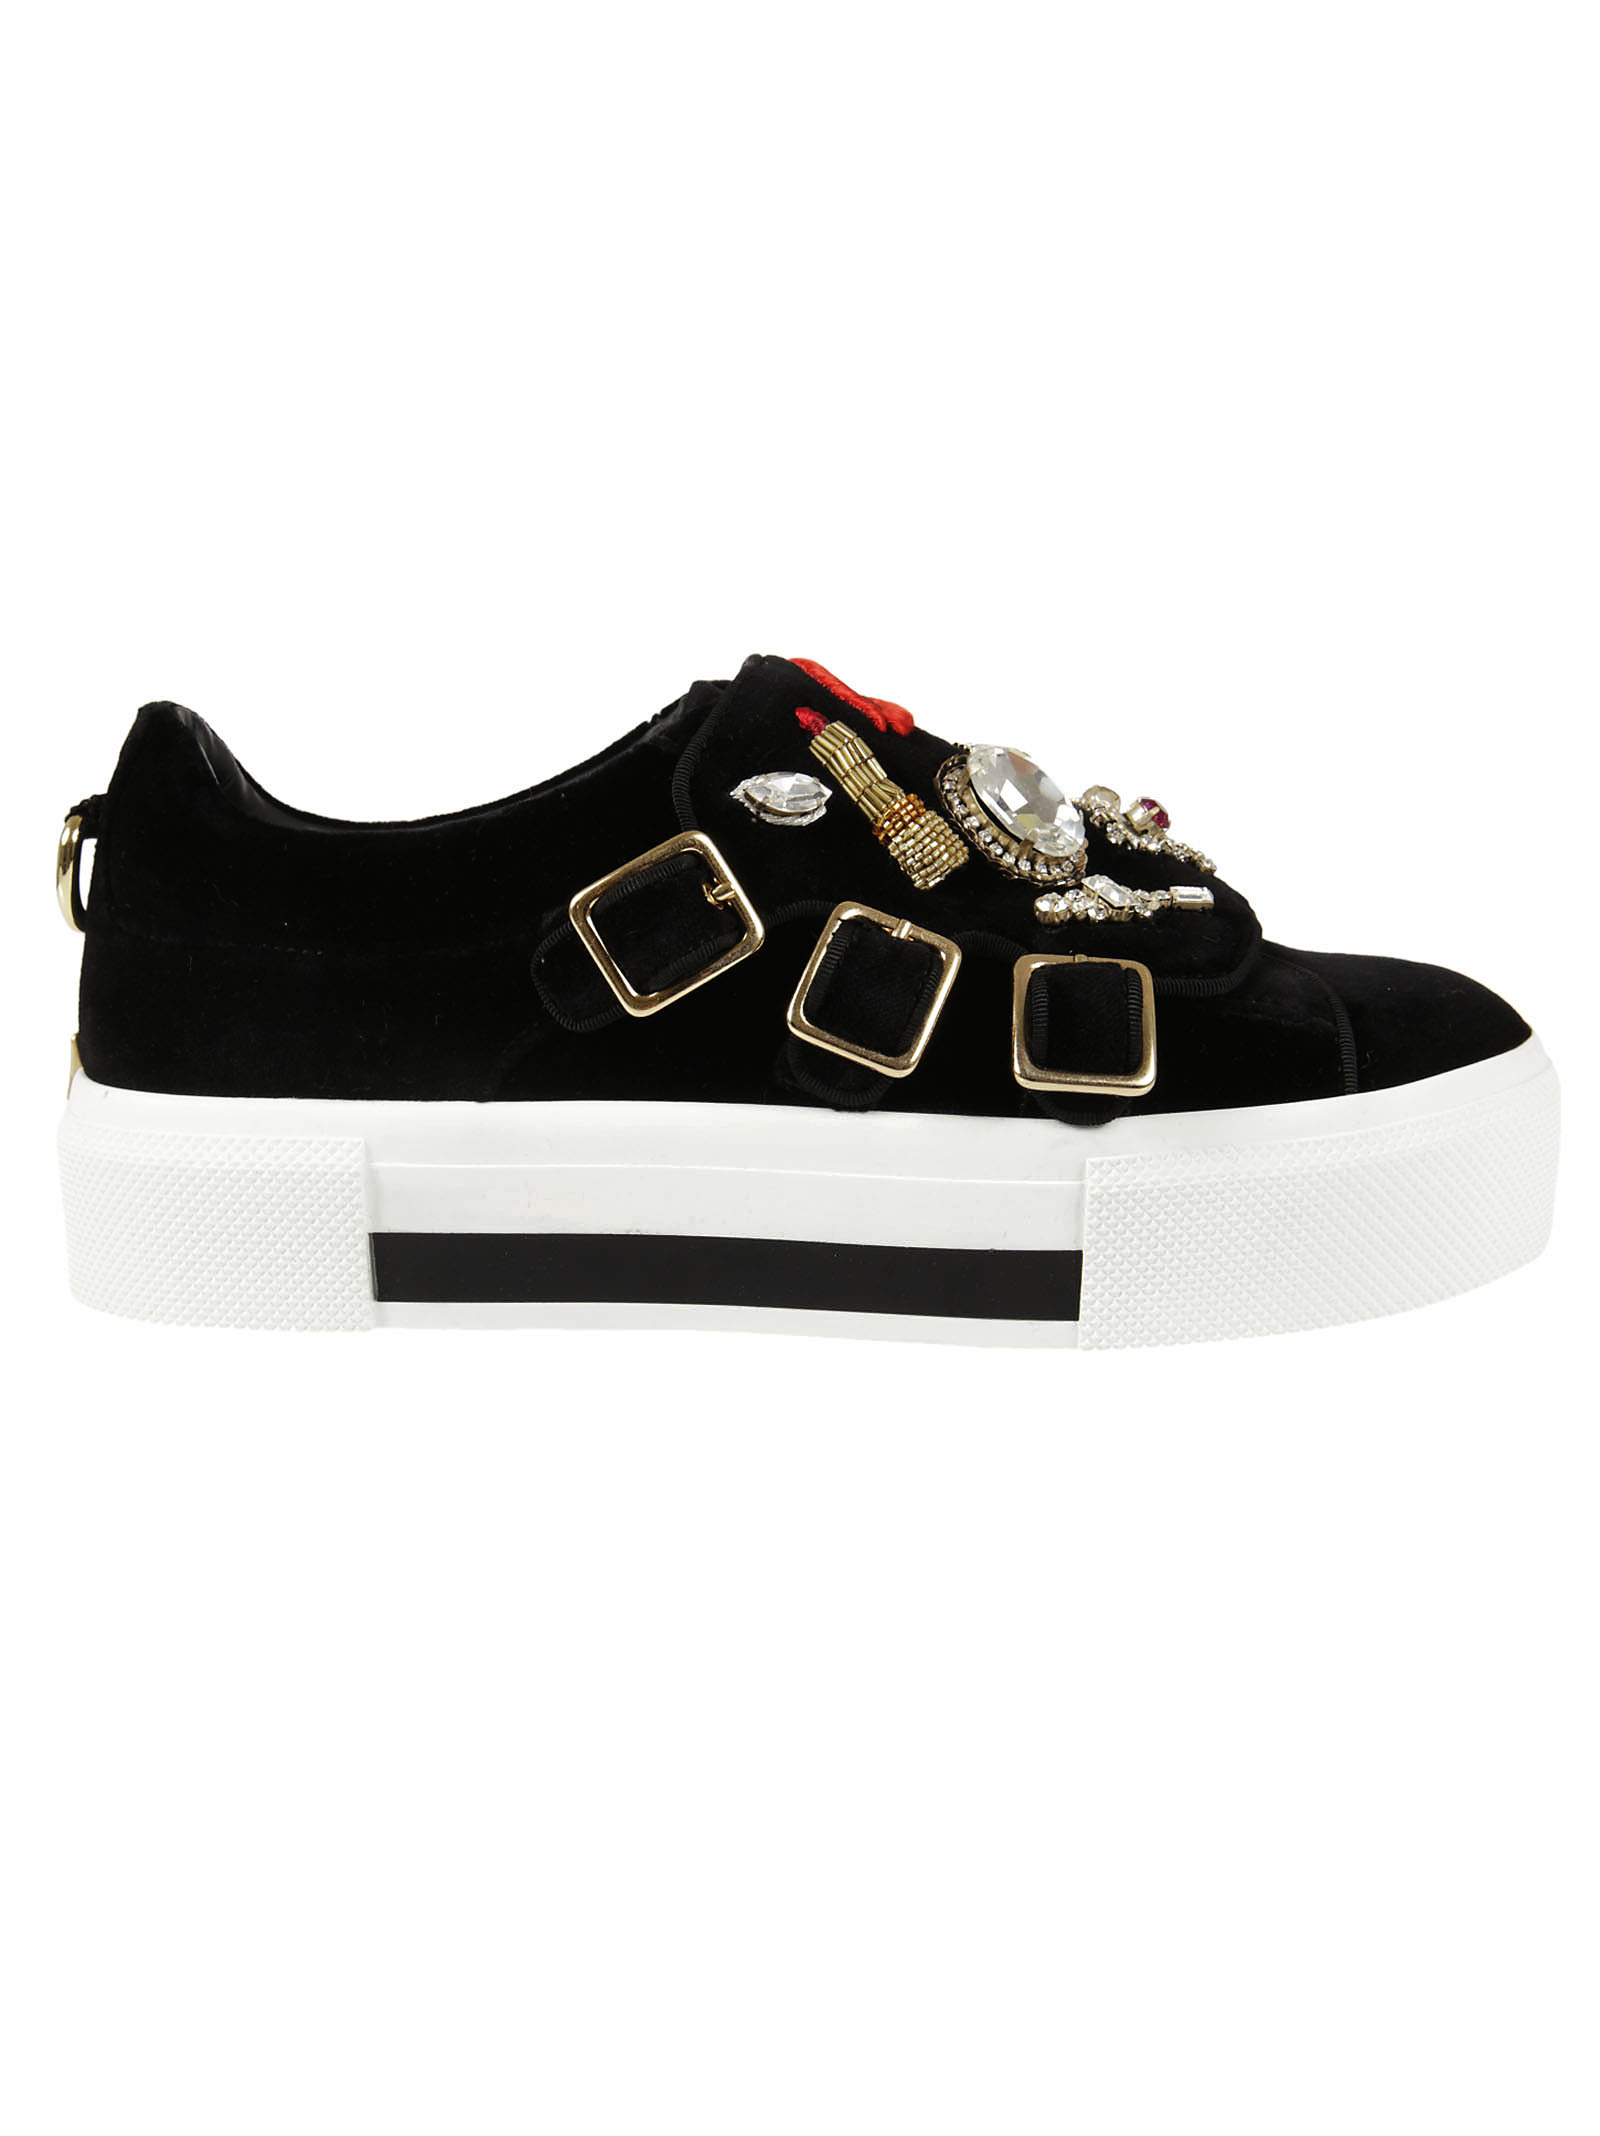 Alexander McQueen Alexander McQueen Obsession Charms Sneakers